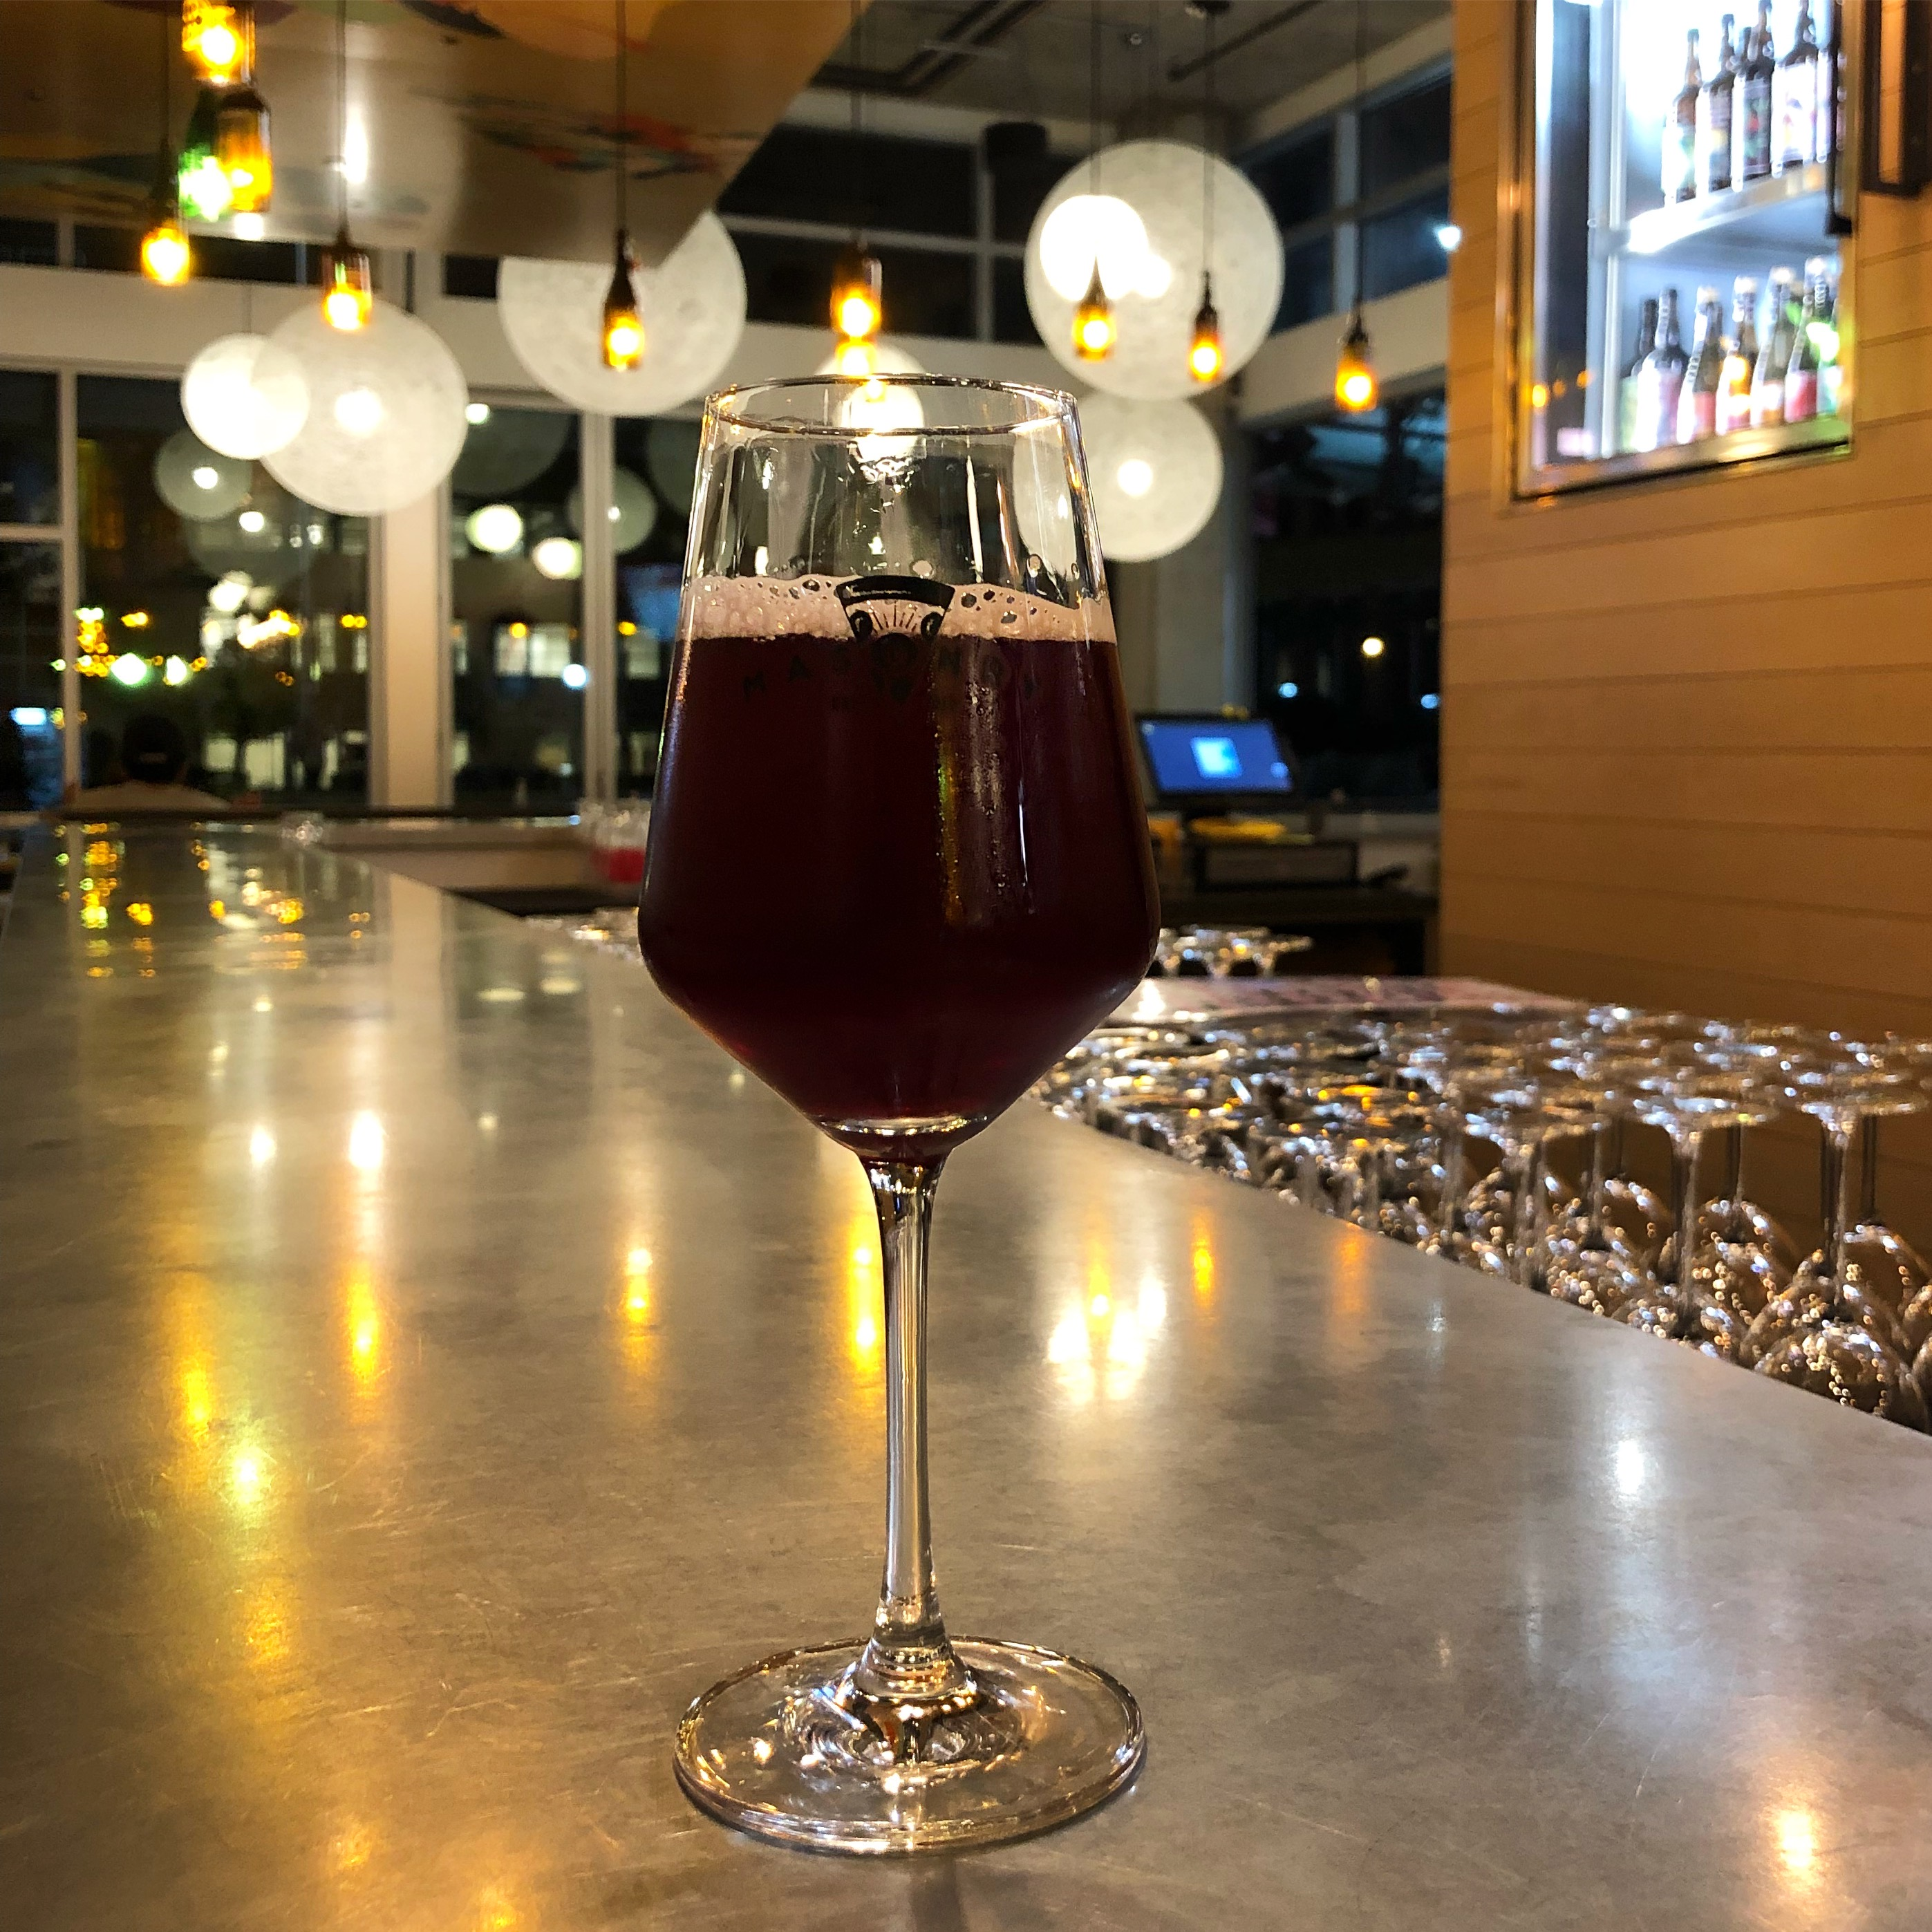 Previewing Nøgne Ø Kriek of Telemark that will be pouring at Kriekfest 2018 in Hood River, Oregon on July 28th.